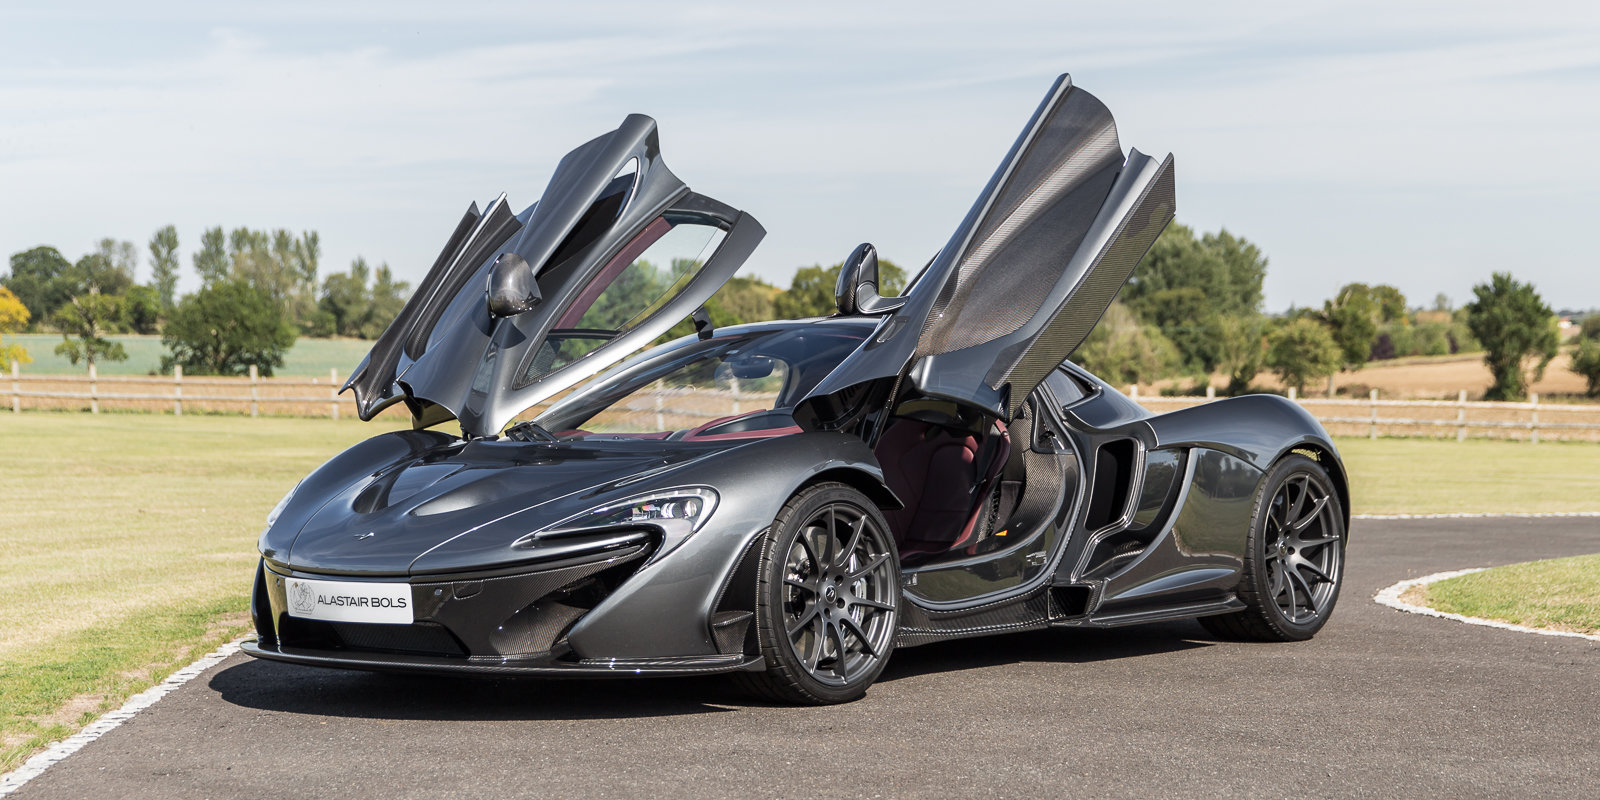 2014 McLaren P1 - UK Supplied, 1 owner & just had major service For Sale (picture 6 of 6)